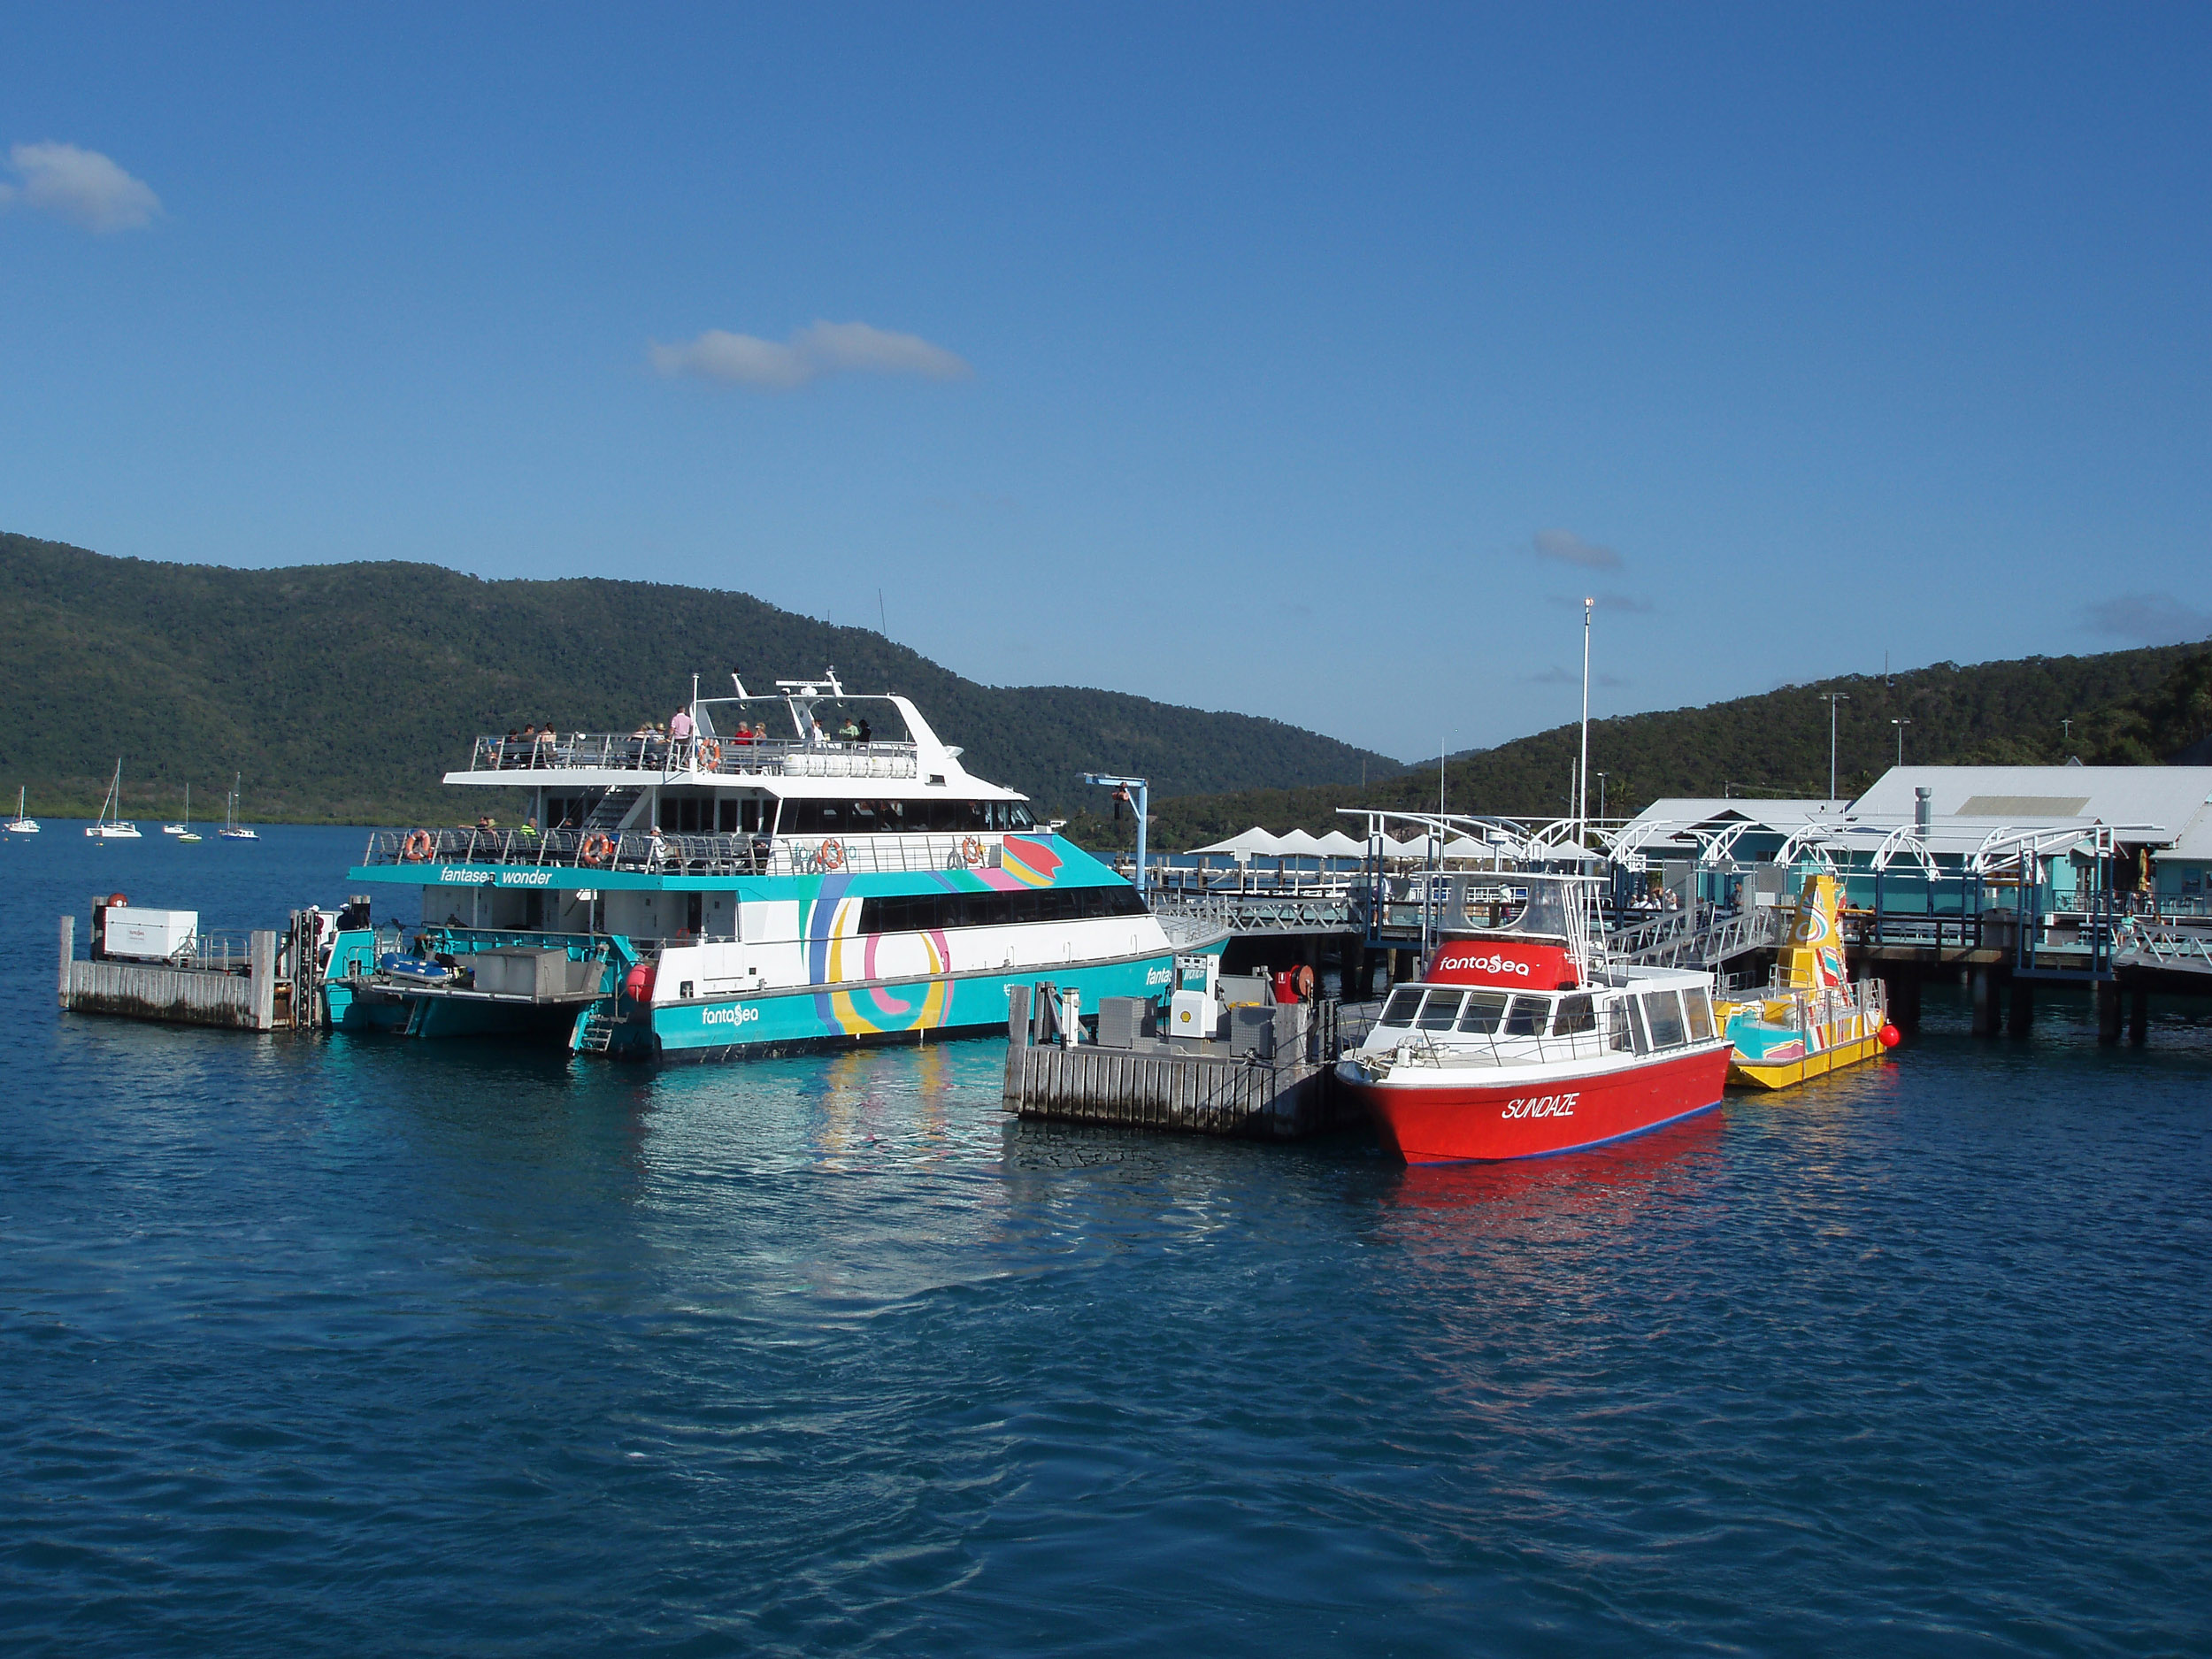 boats in the ferry terminal at shute harbour